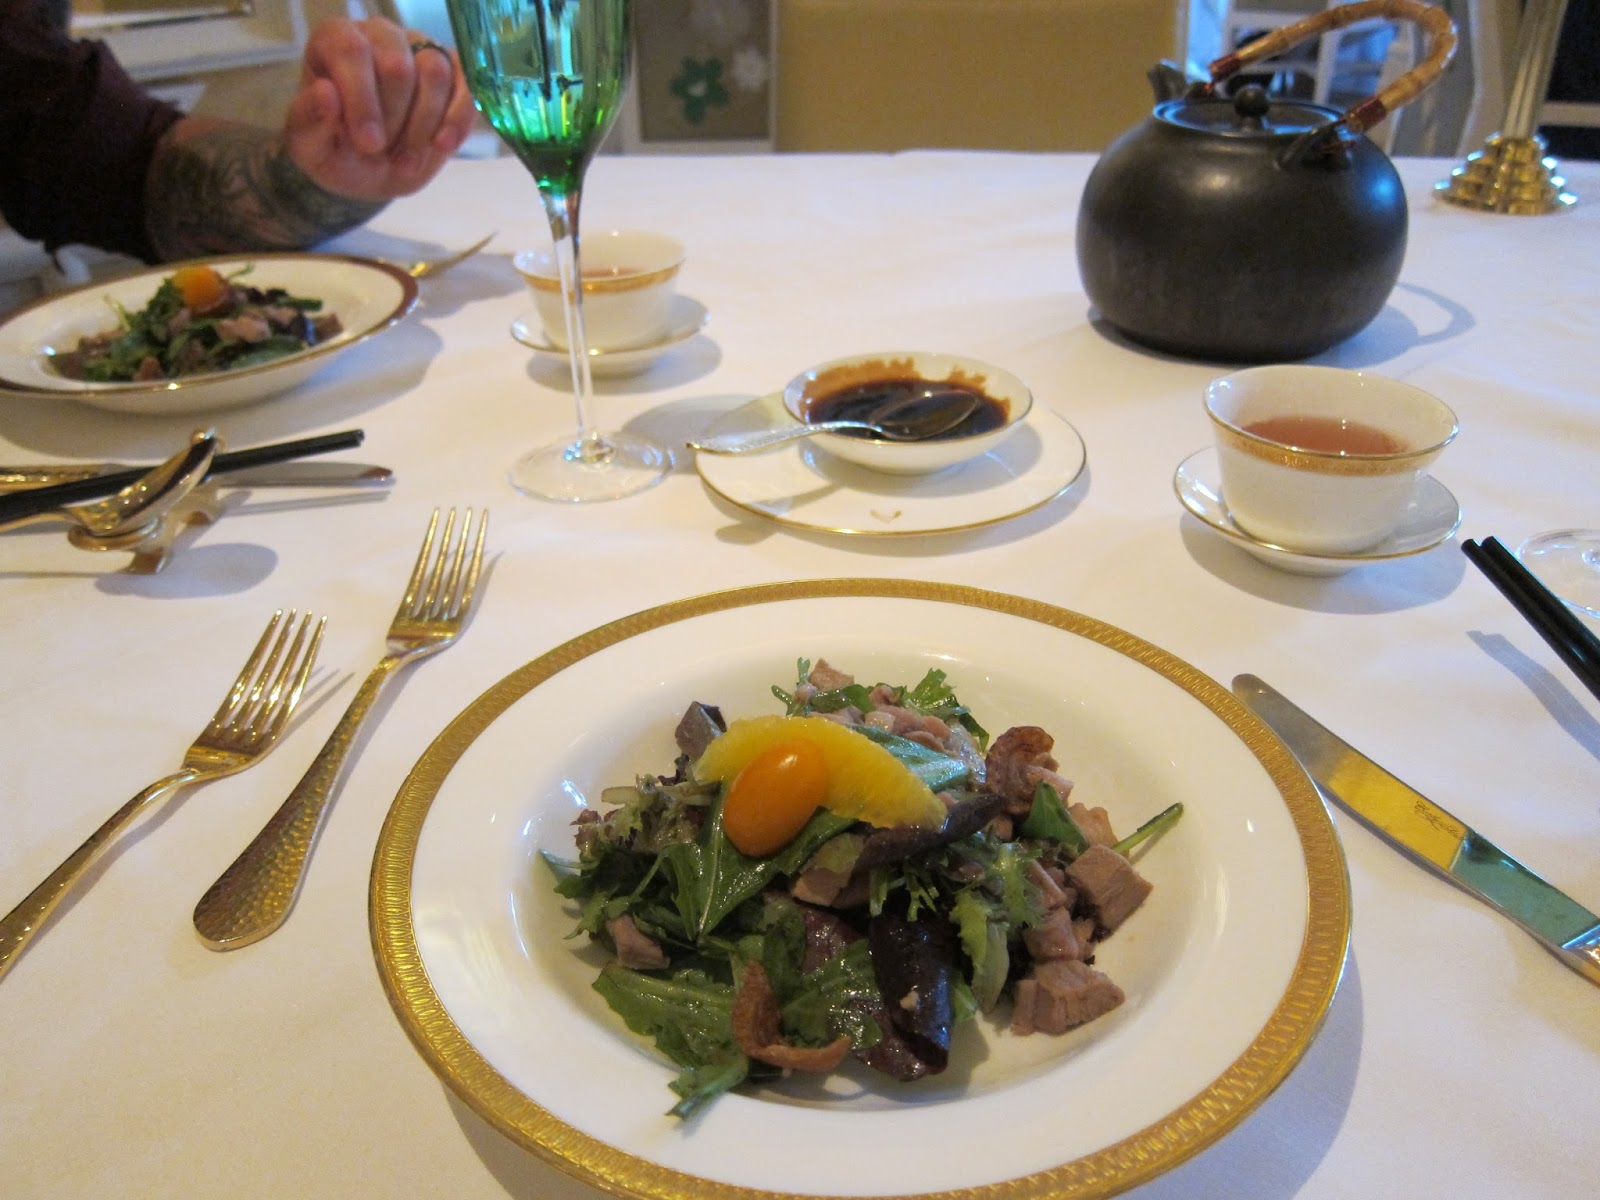 Everyday Foodie: Chinese Food - Michelin Star Style